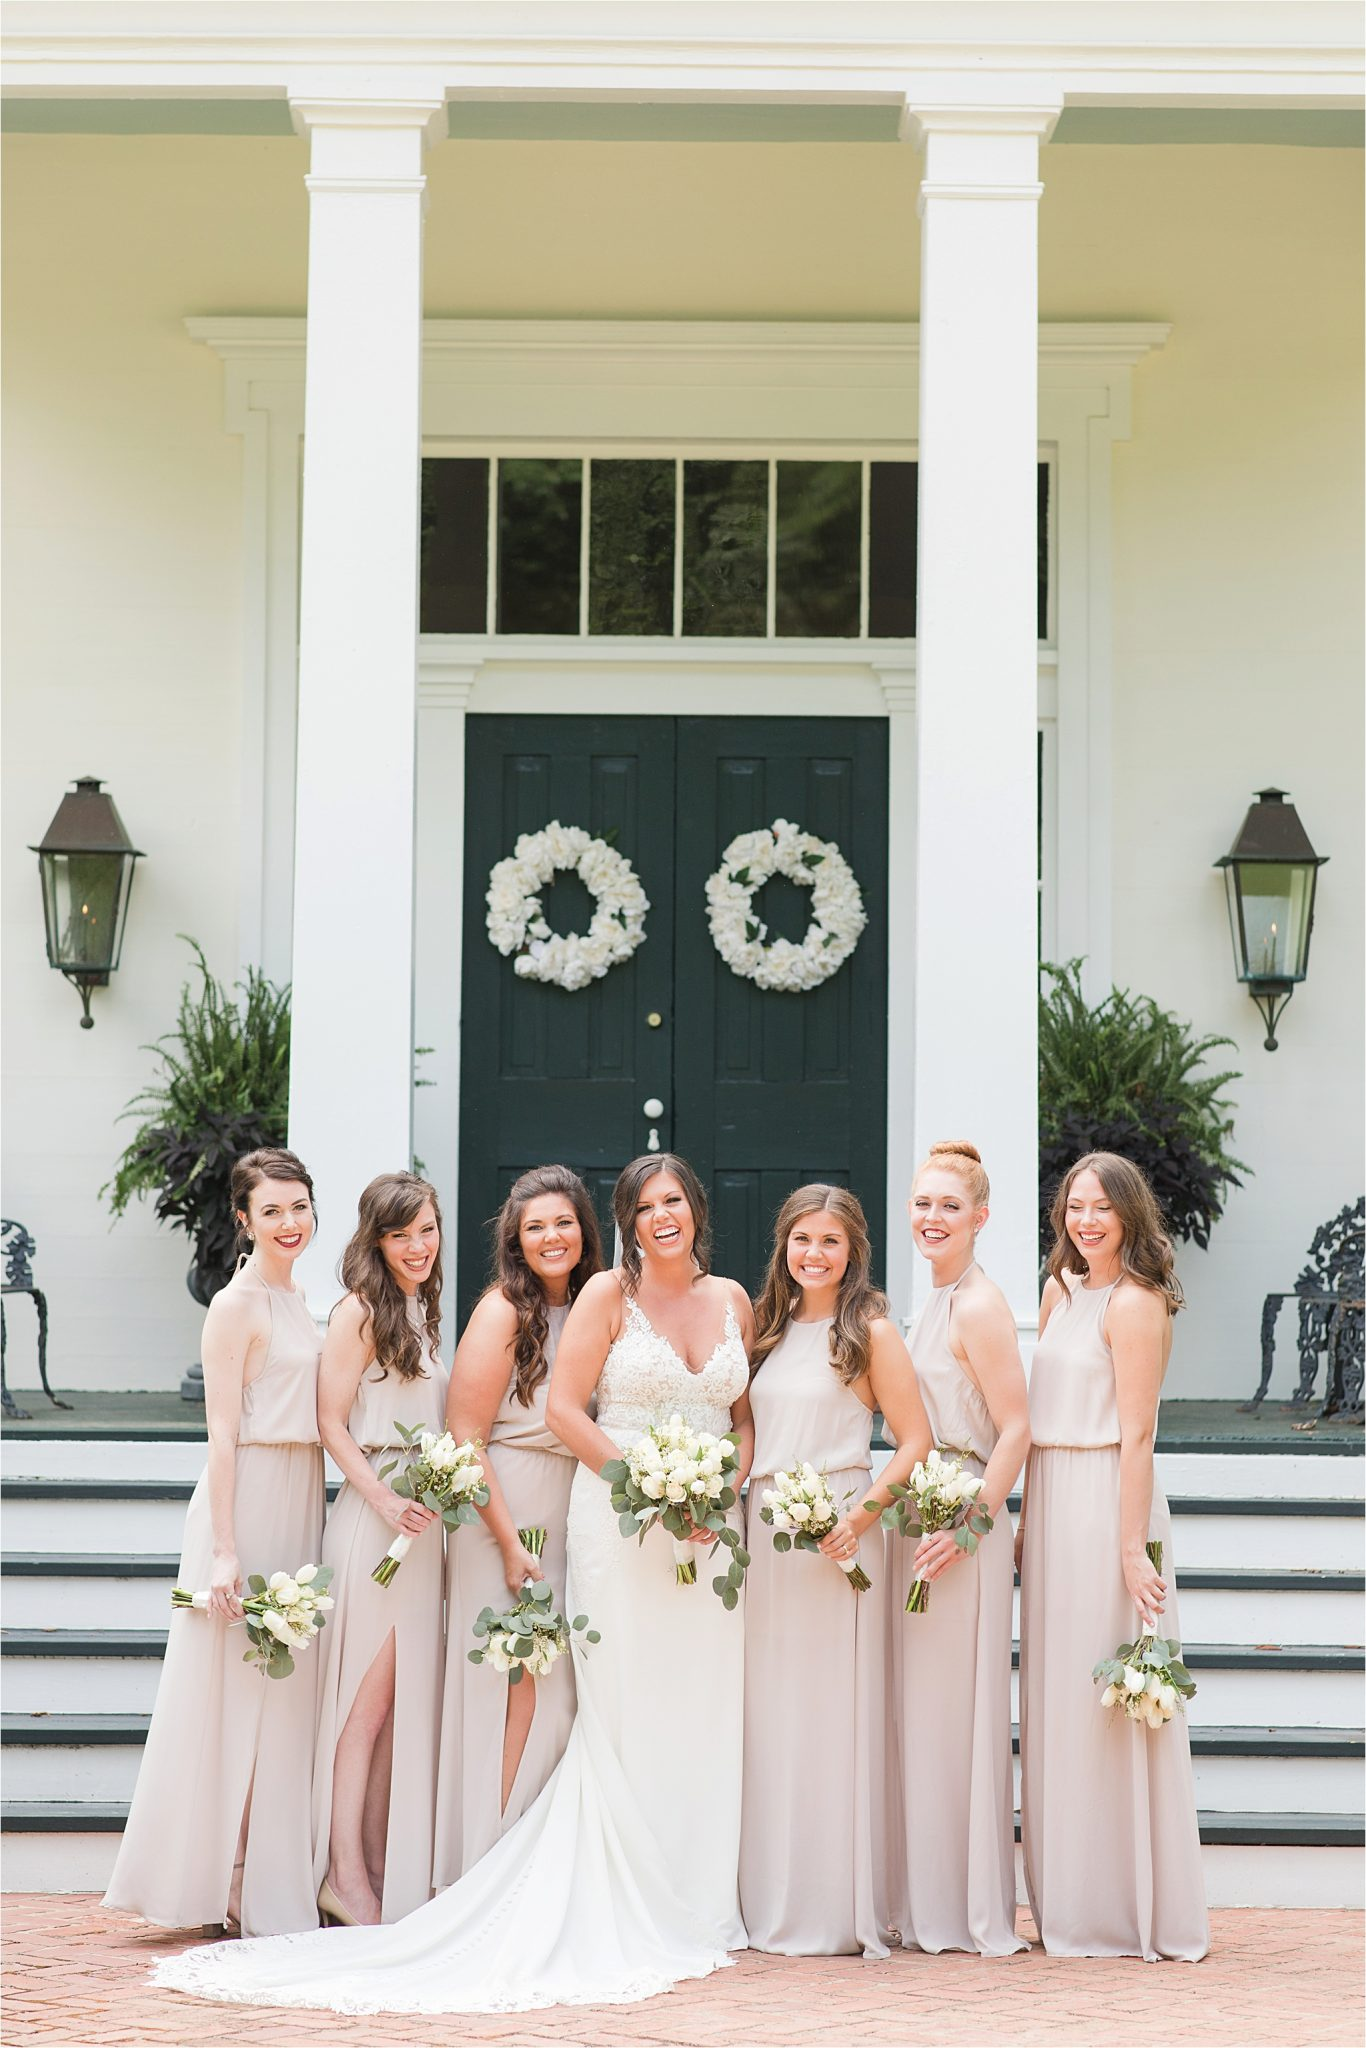 Hedge Farm Wedding, Alabama Wedding Photographer, Barn Wedding, Bride and bridesmaids, Neutrals